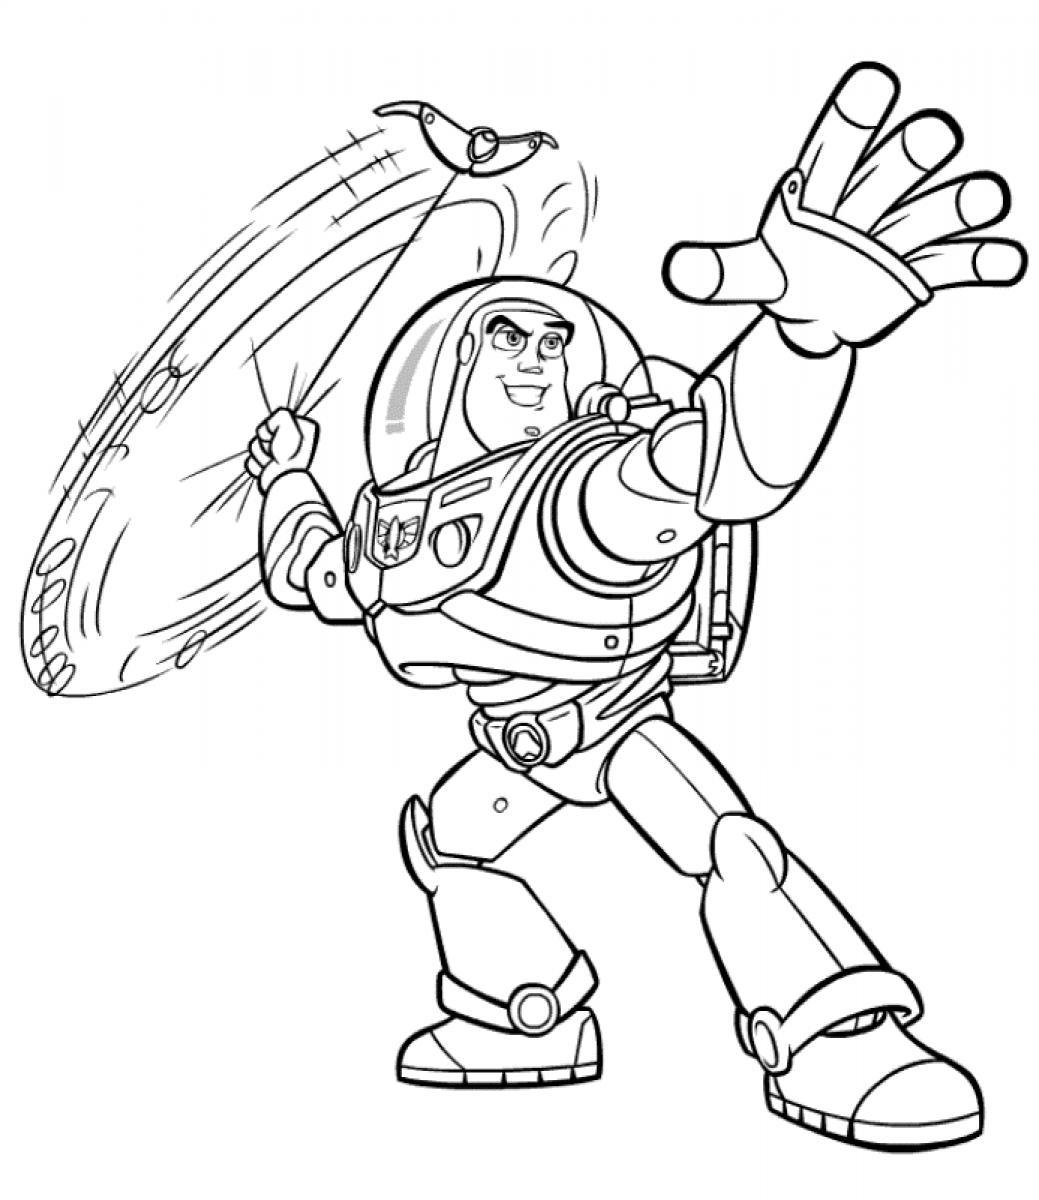 buzz lightyear printable coloring pages free printable buzz lightyear coloring pages for kids buzz coloring printable lightyear pages